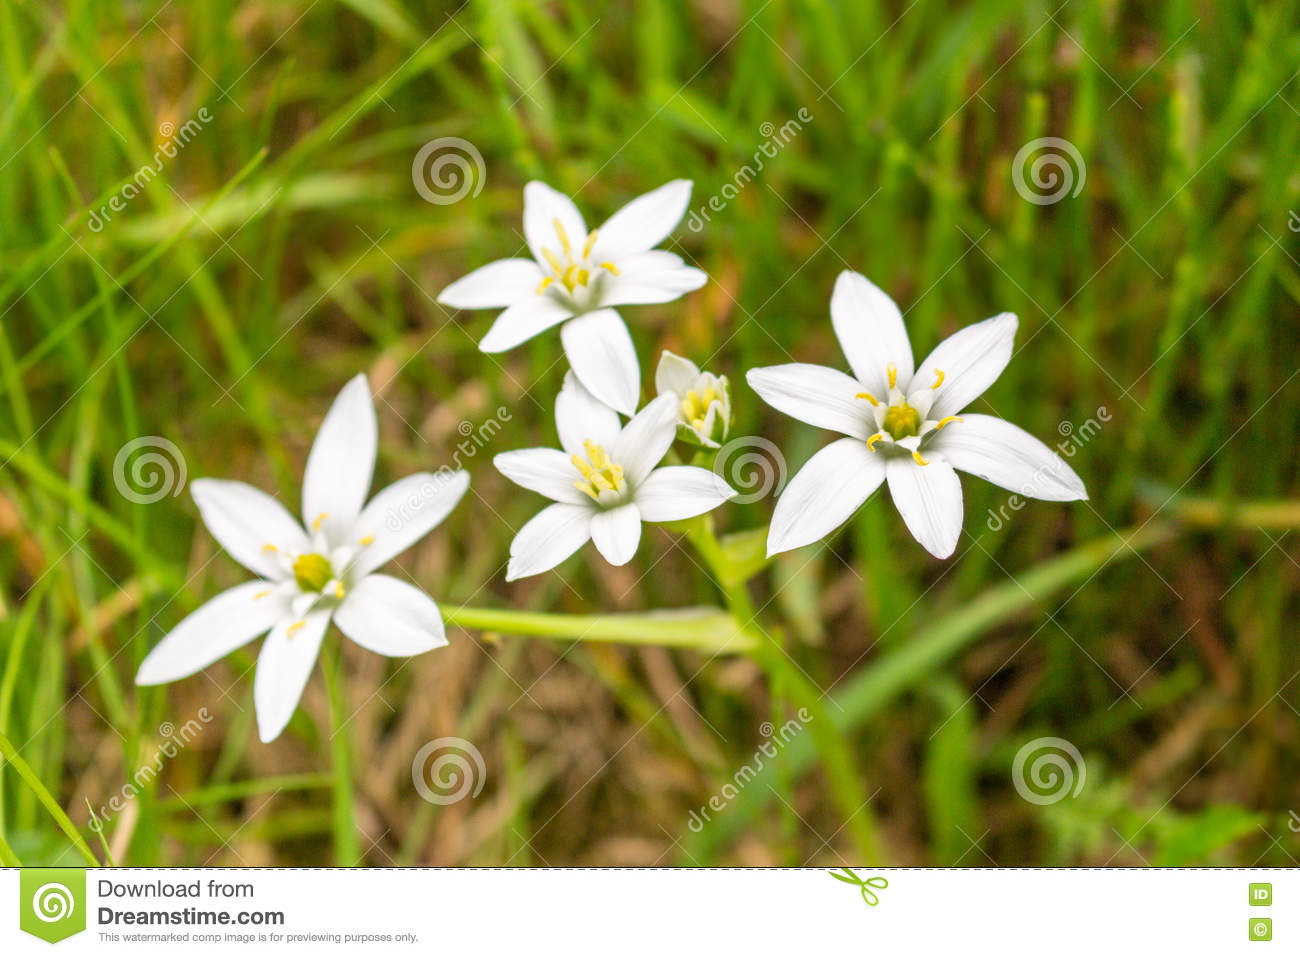 White Flowers With 6 Petals Stock Photo Image Of Pistil Stamen